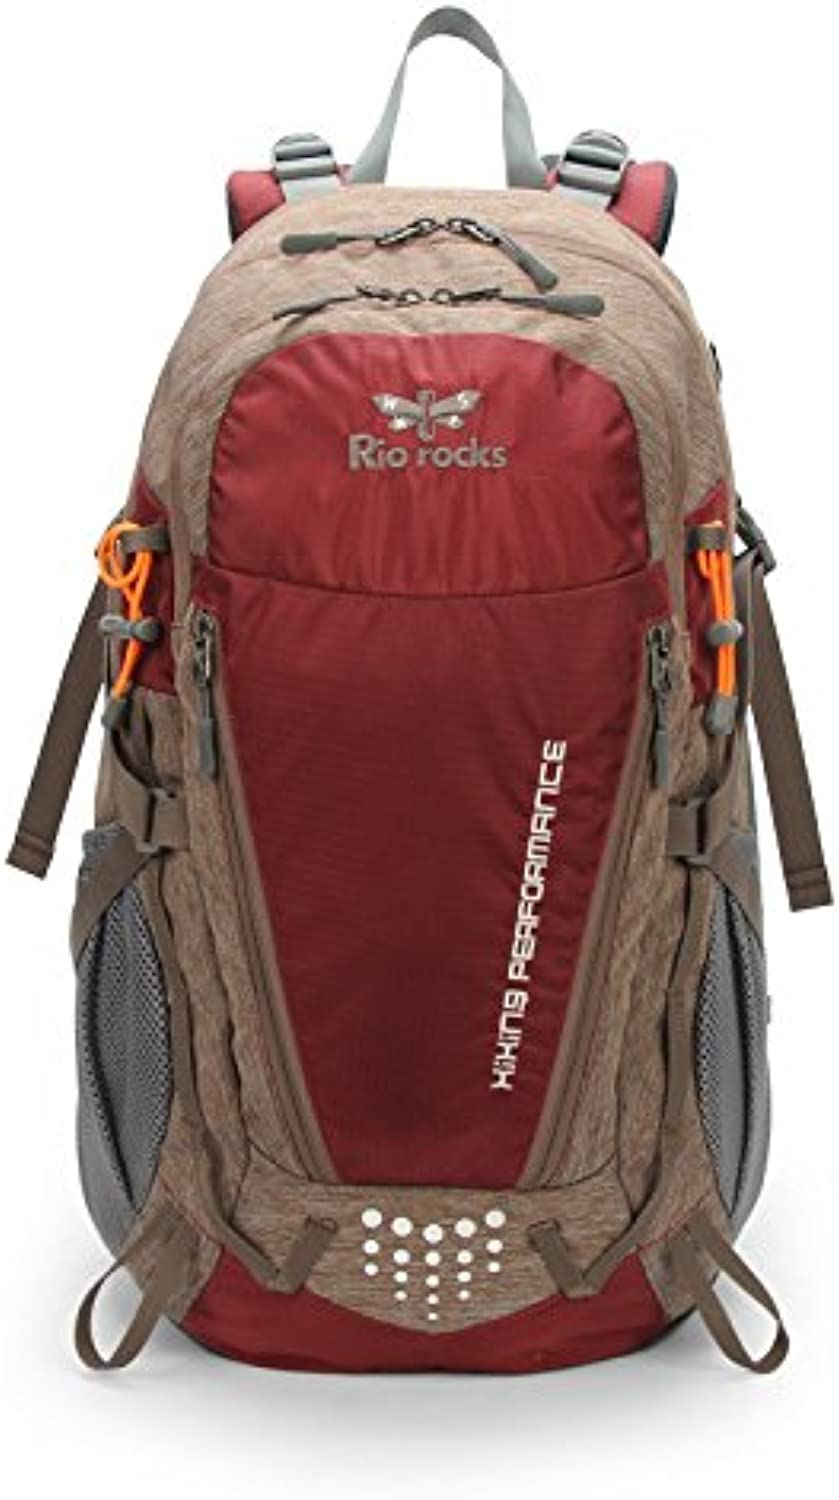 GWQGZ New Leisure Hiking Backpack Outdoor Camping Large Capacity Mountaineering Bag